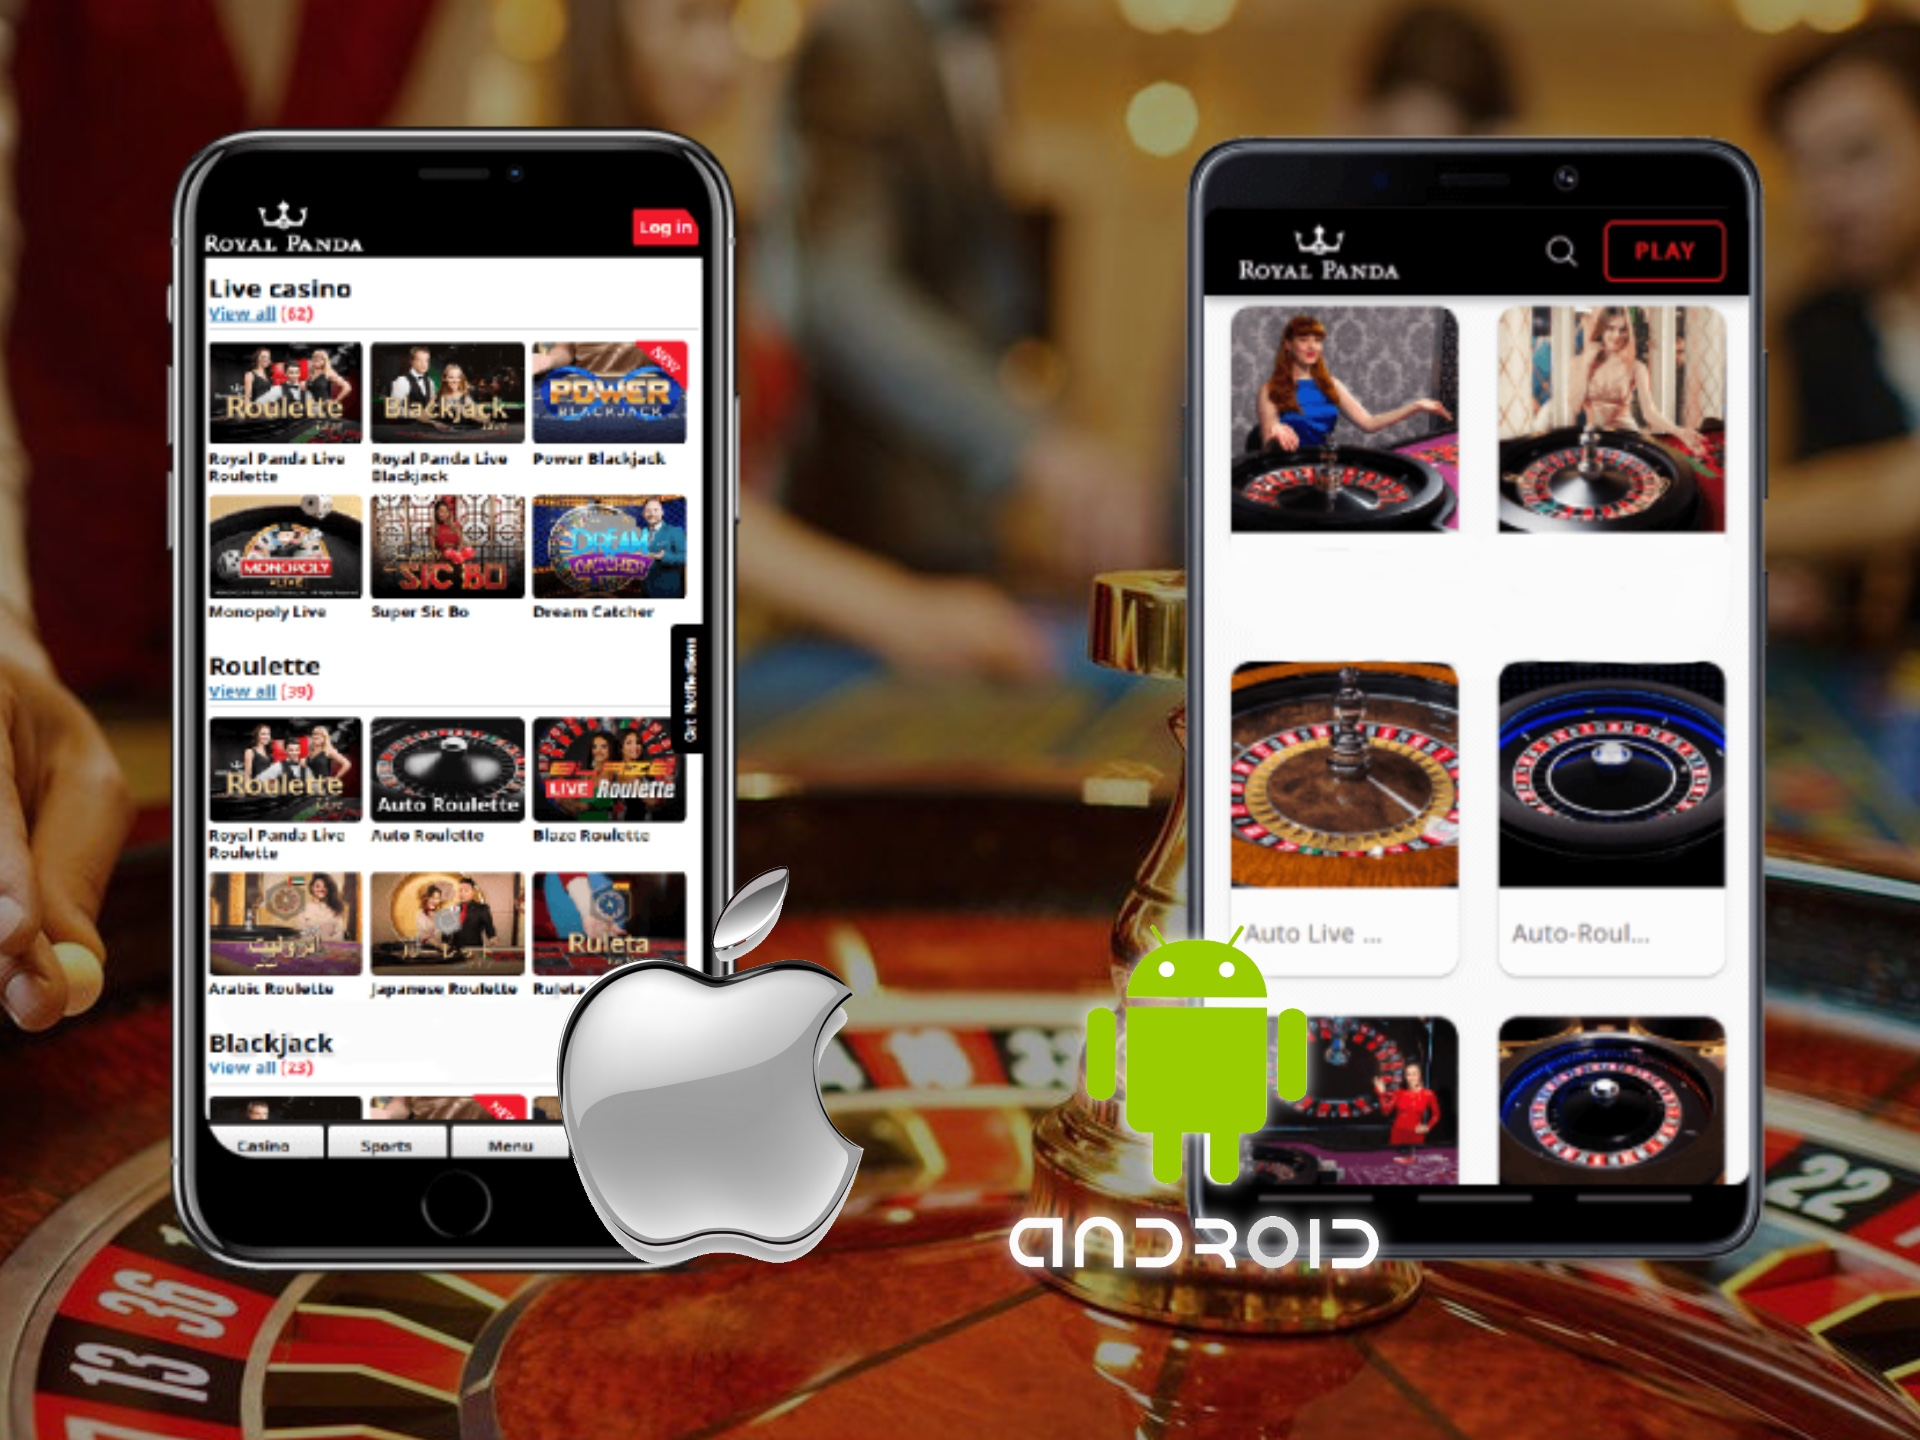 Play casino games with live dealers at Royla Panda casino.